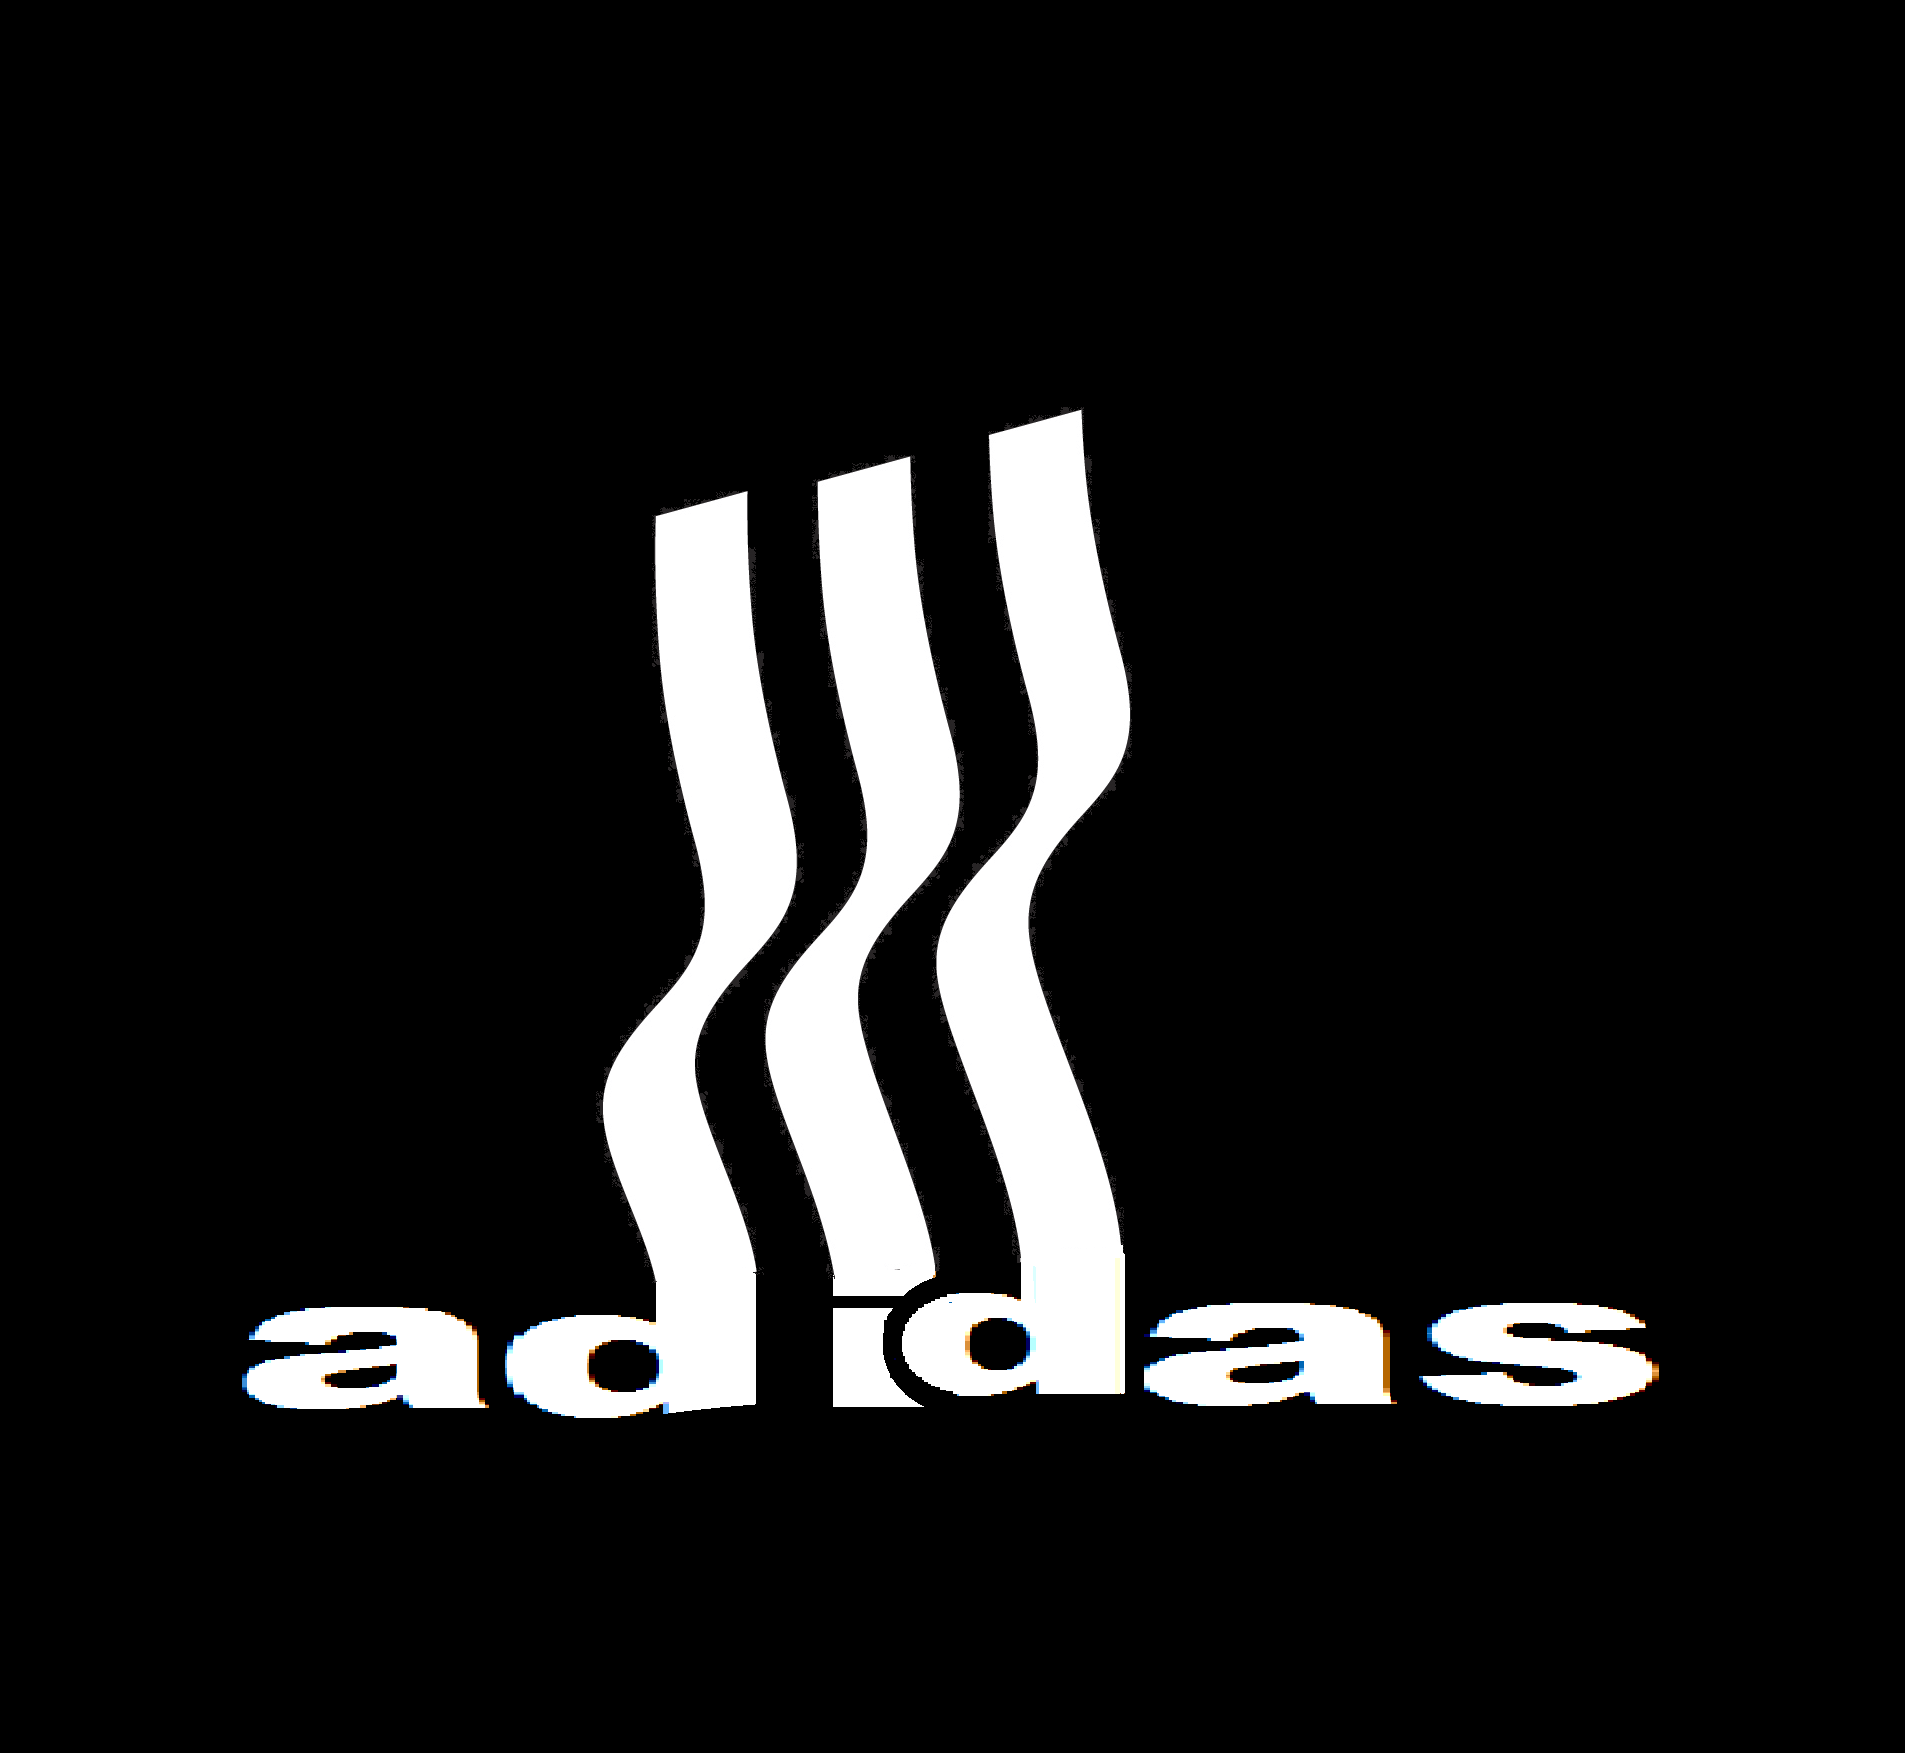 New Fresh Free Download Funny And Adidas Logo Desktop Background 4k Ultra Hd Widescreen Wal Adidas Logo Wallpapers Adidas Wallpapers Hd Widescreen Wallpapers